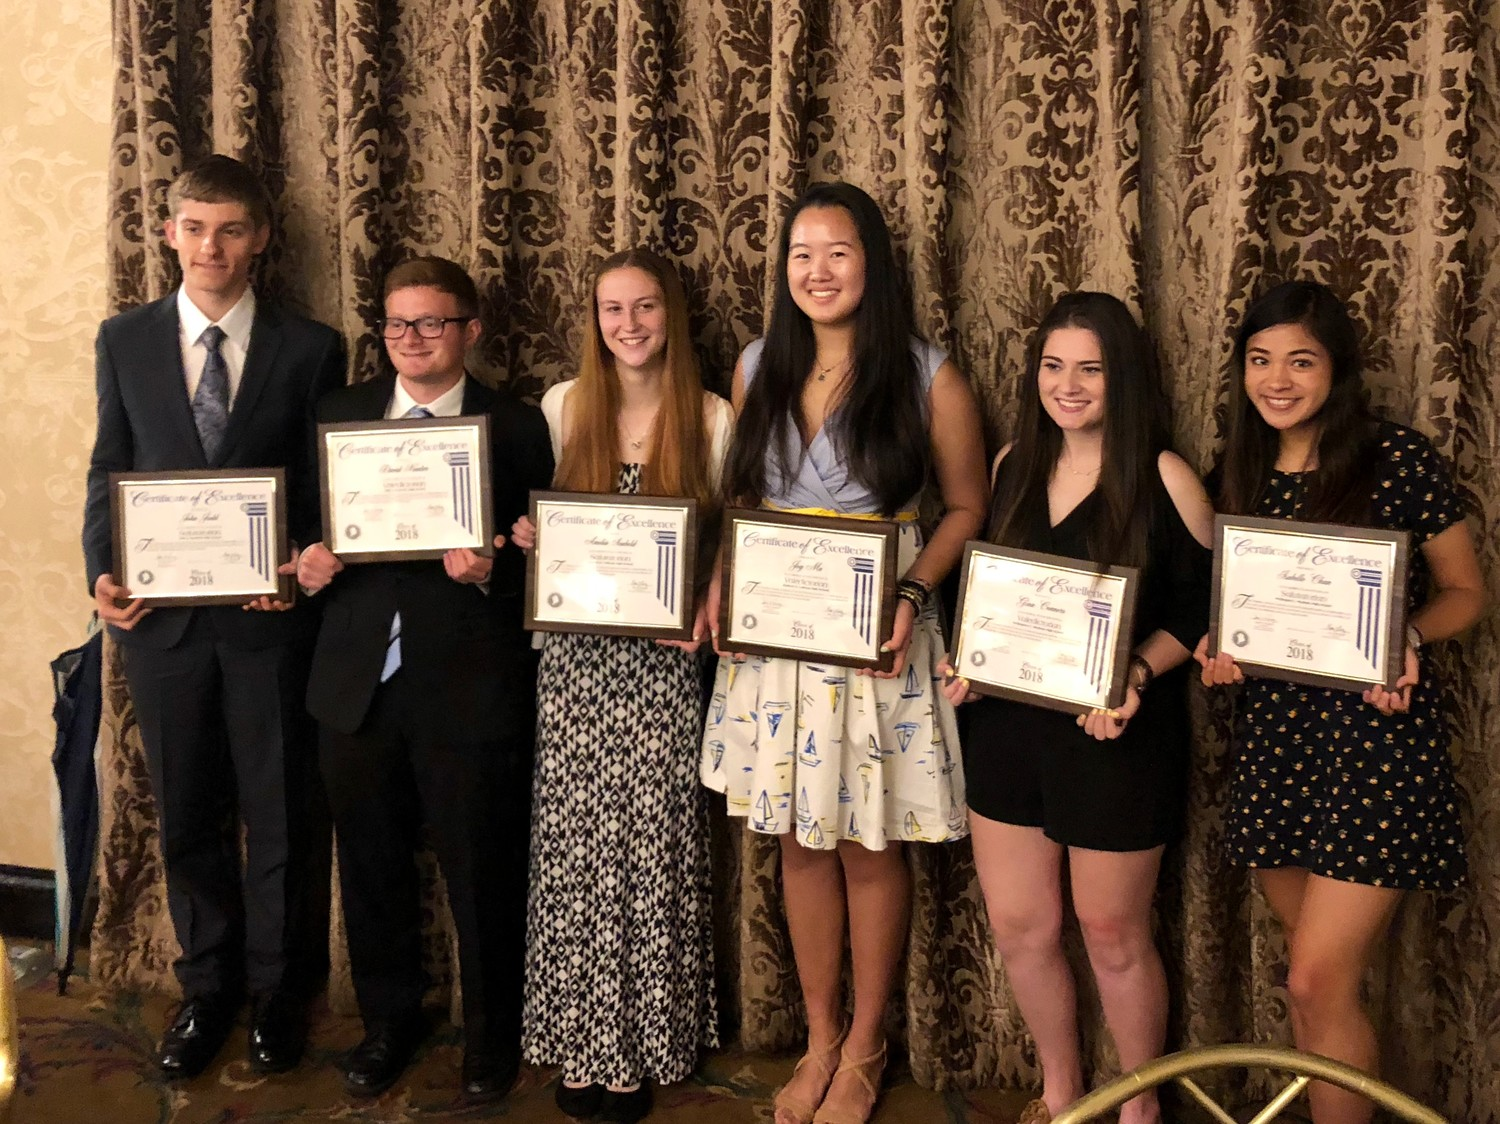 Dylan Judd, far left, David Kantor, Amelia Seabold, Joy Ma, Gina Connors and Isabelle Chan were honored as the Bellmore-Merrick Central High School District's valedictorians and salutatorians at the Crest Hollow Country Club on June 1.